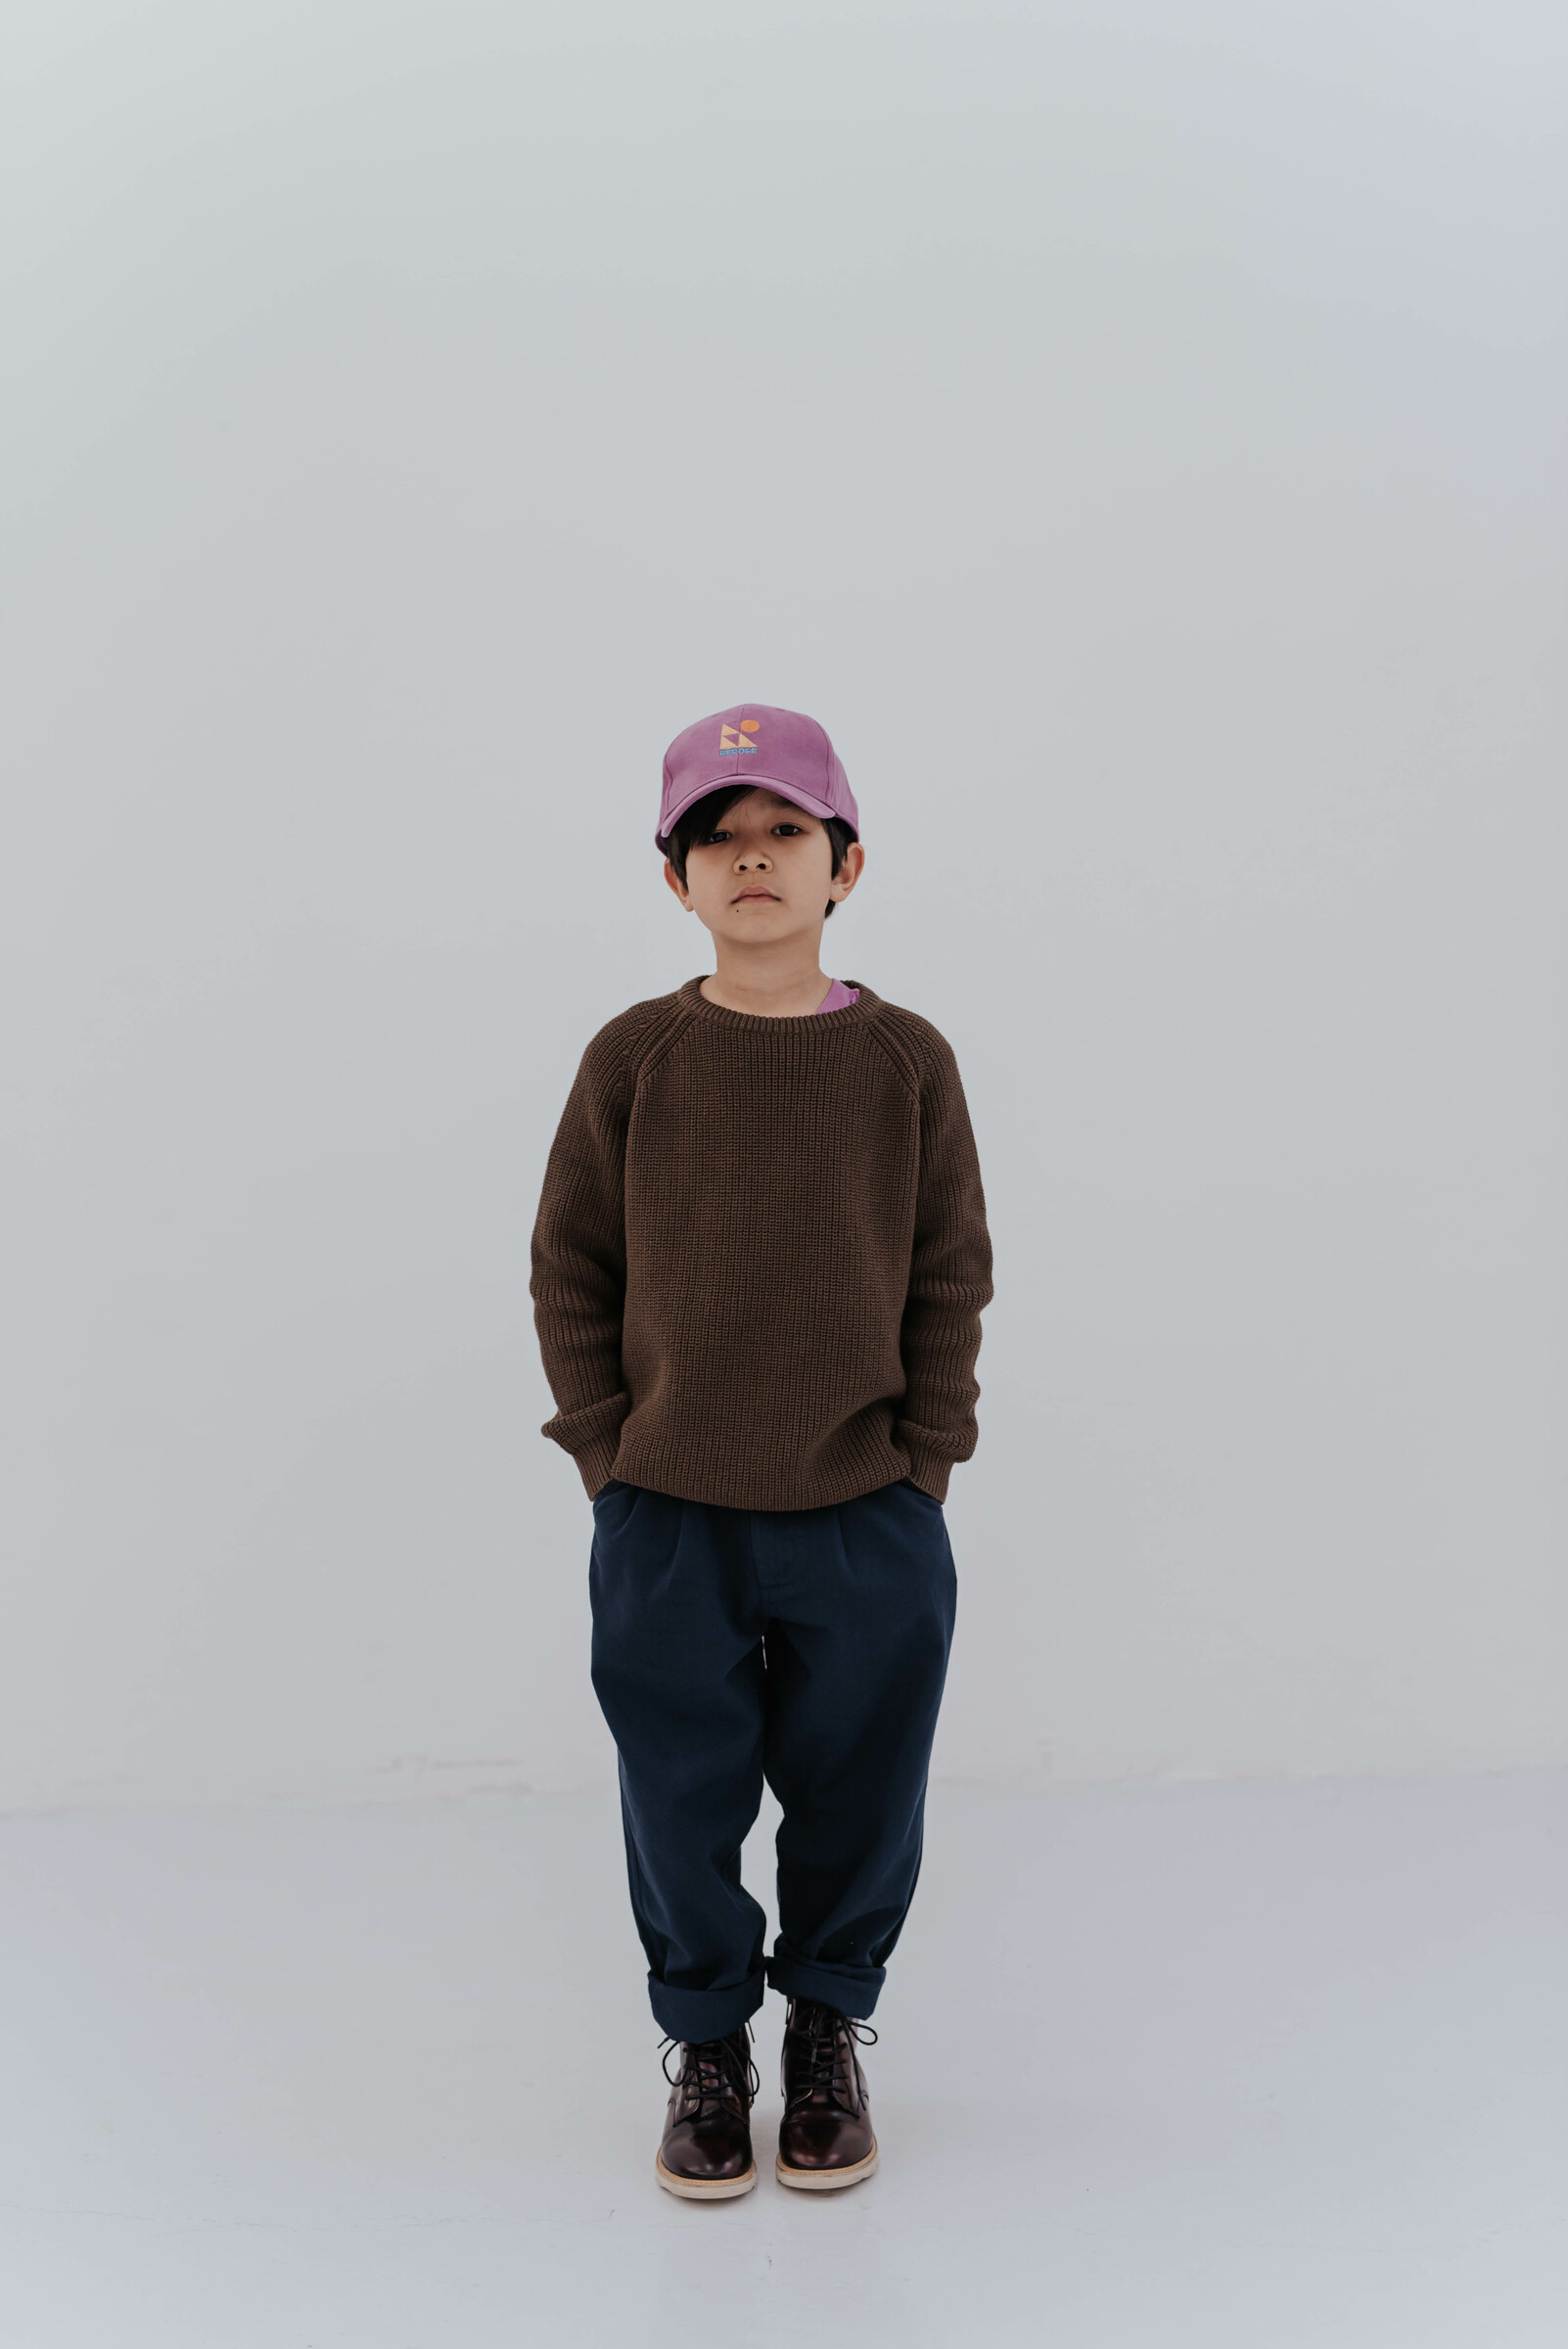 Repose AMS Lookbook images AW21 Everything2913.jpeg